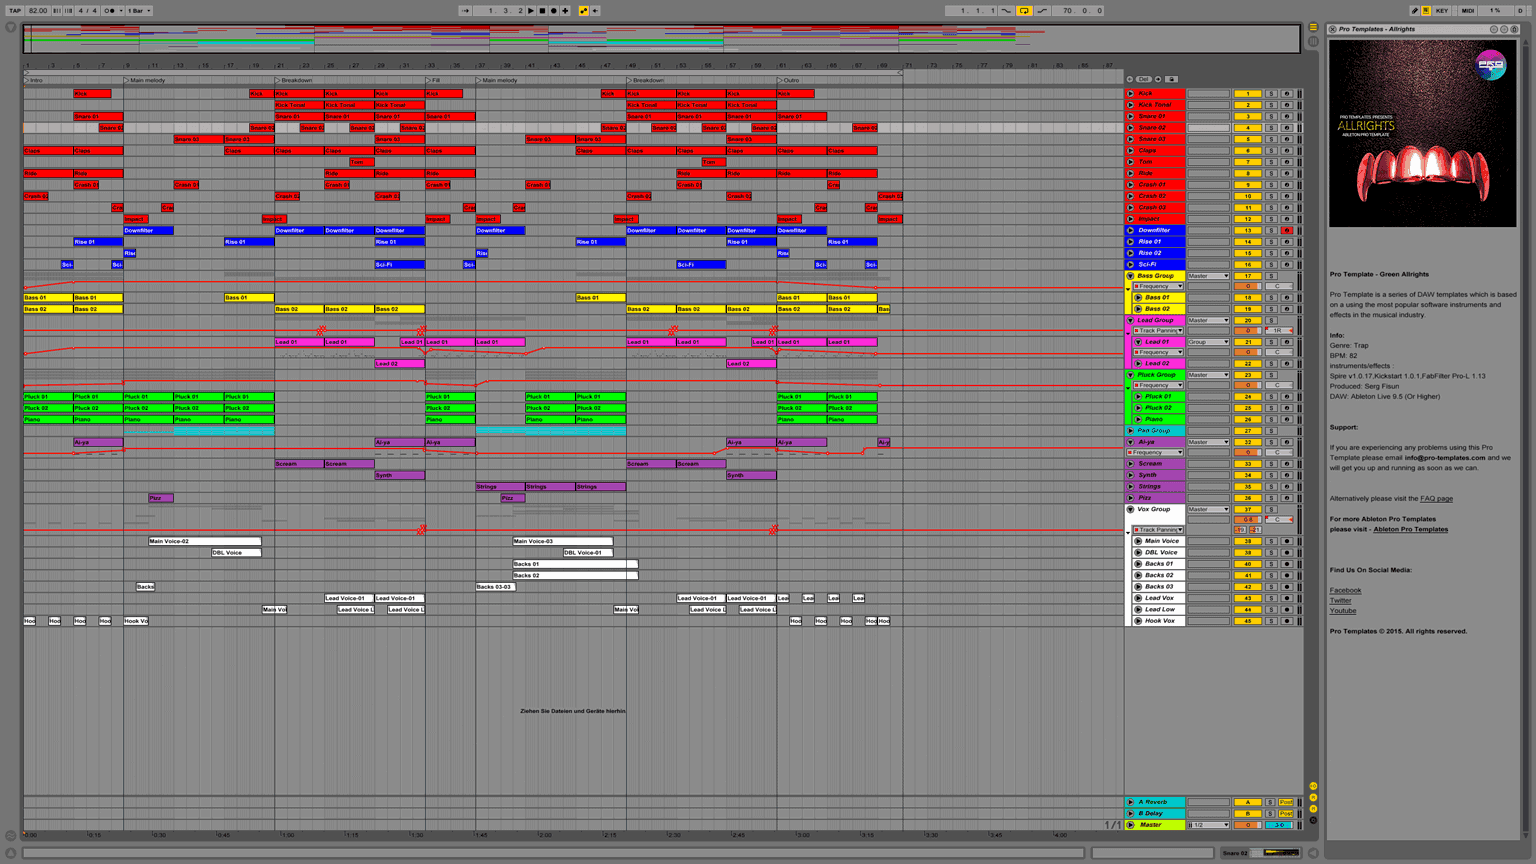 Allrights Ableton Pro Template